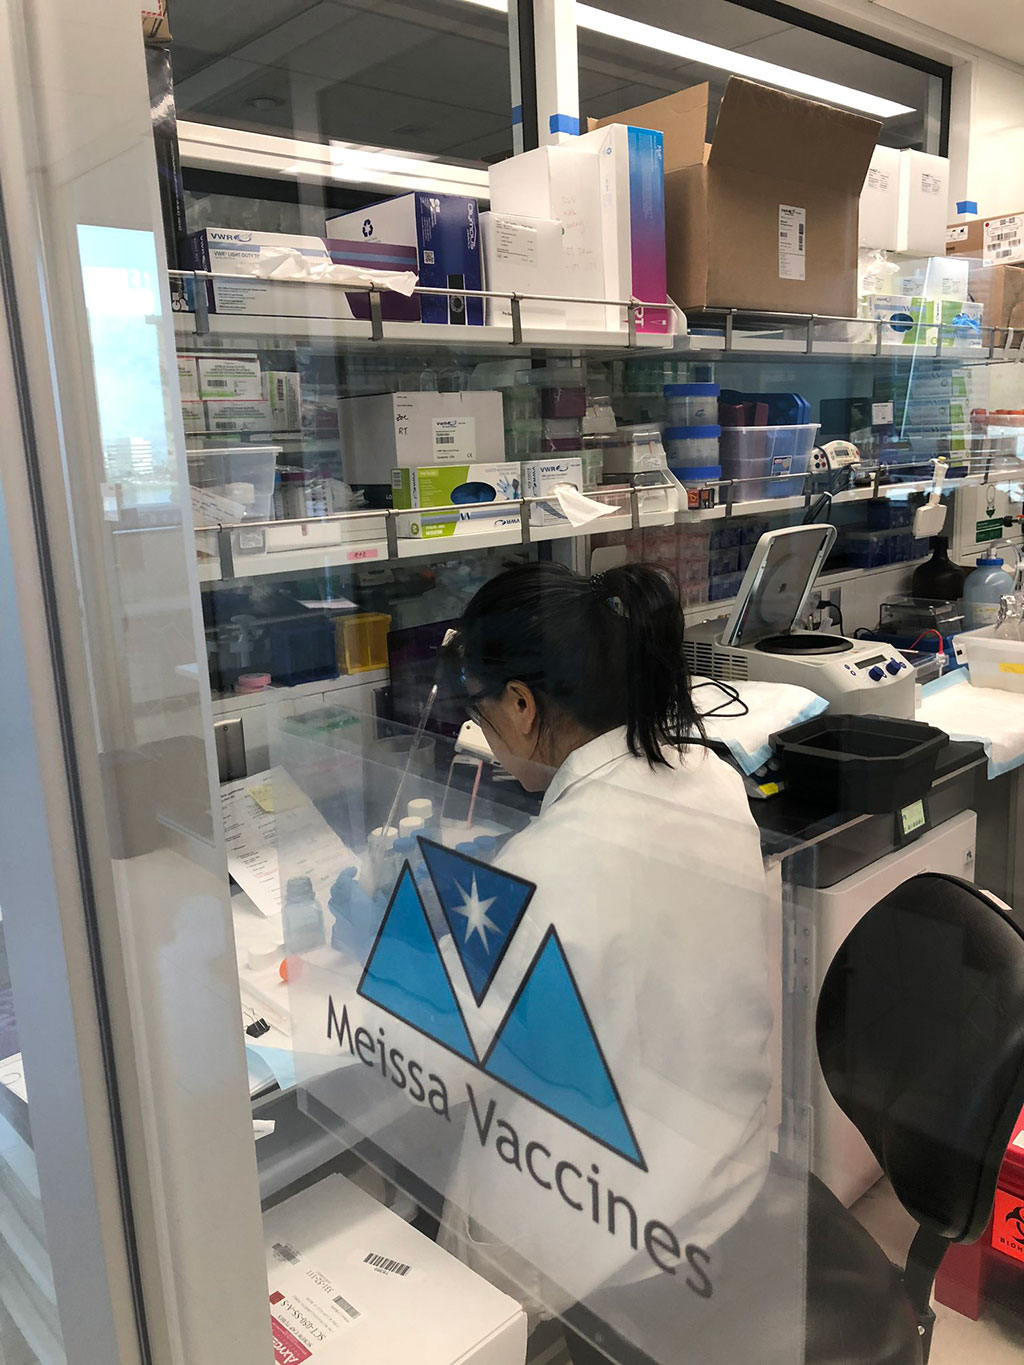 Image: Positive Clinical Data Supports Development of Single, Intranasal, Adjuvant-Free COVID-19 Vaccine Candidate (Photo courtesy of Meissa Vaccines)